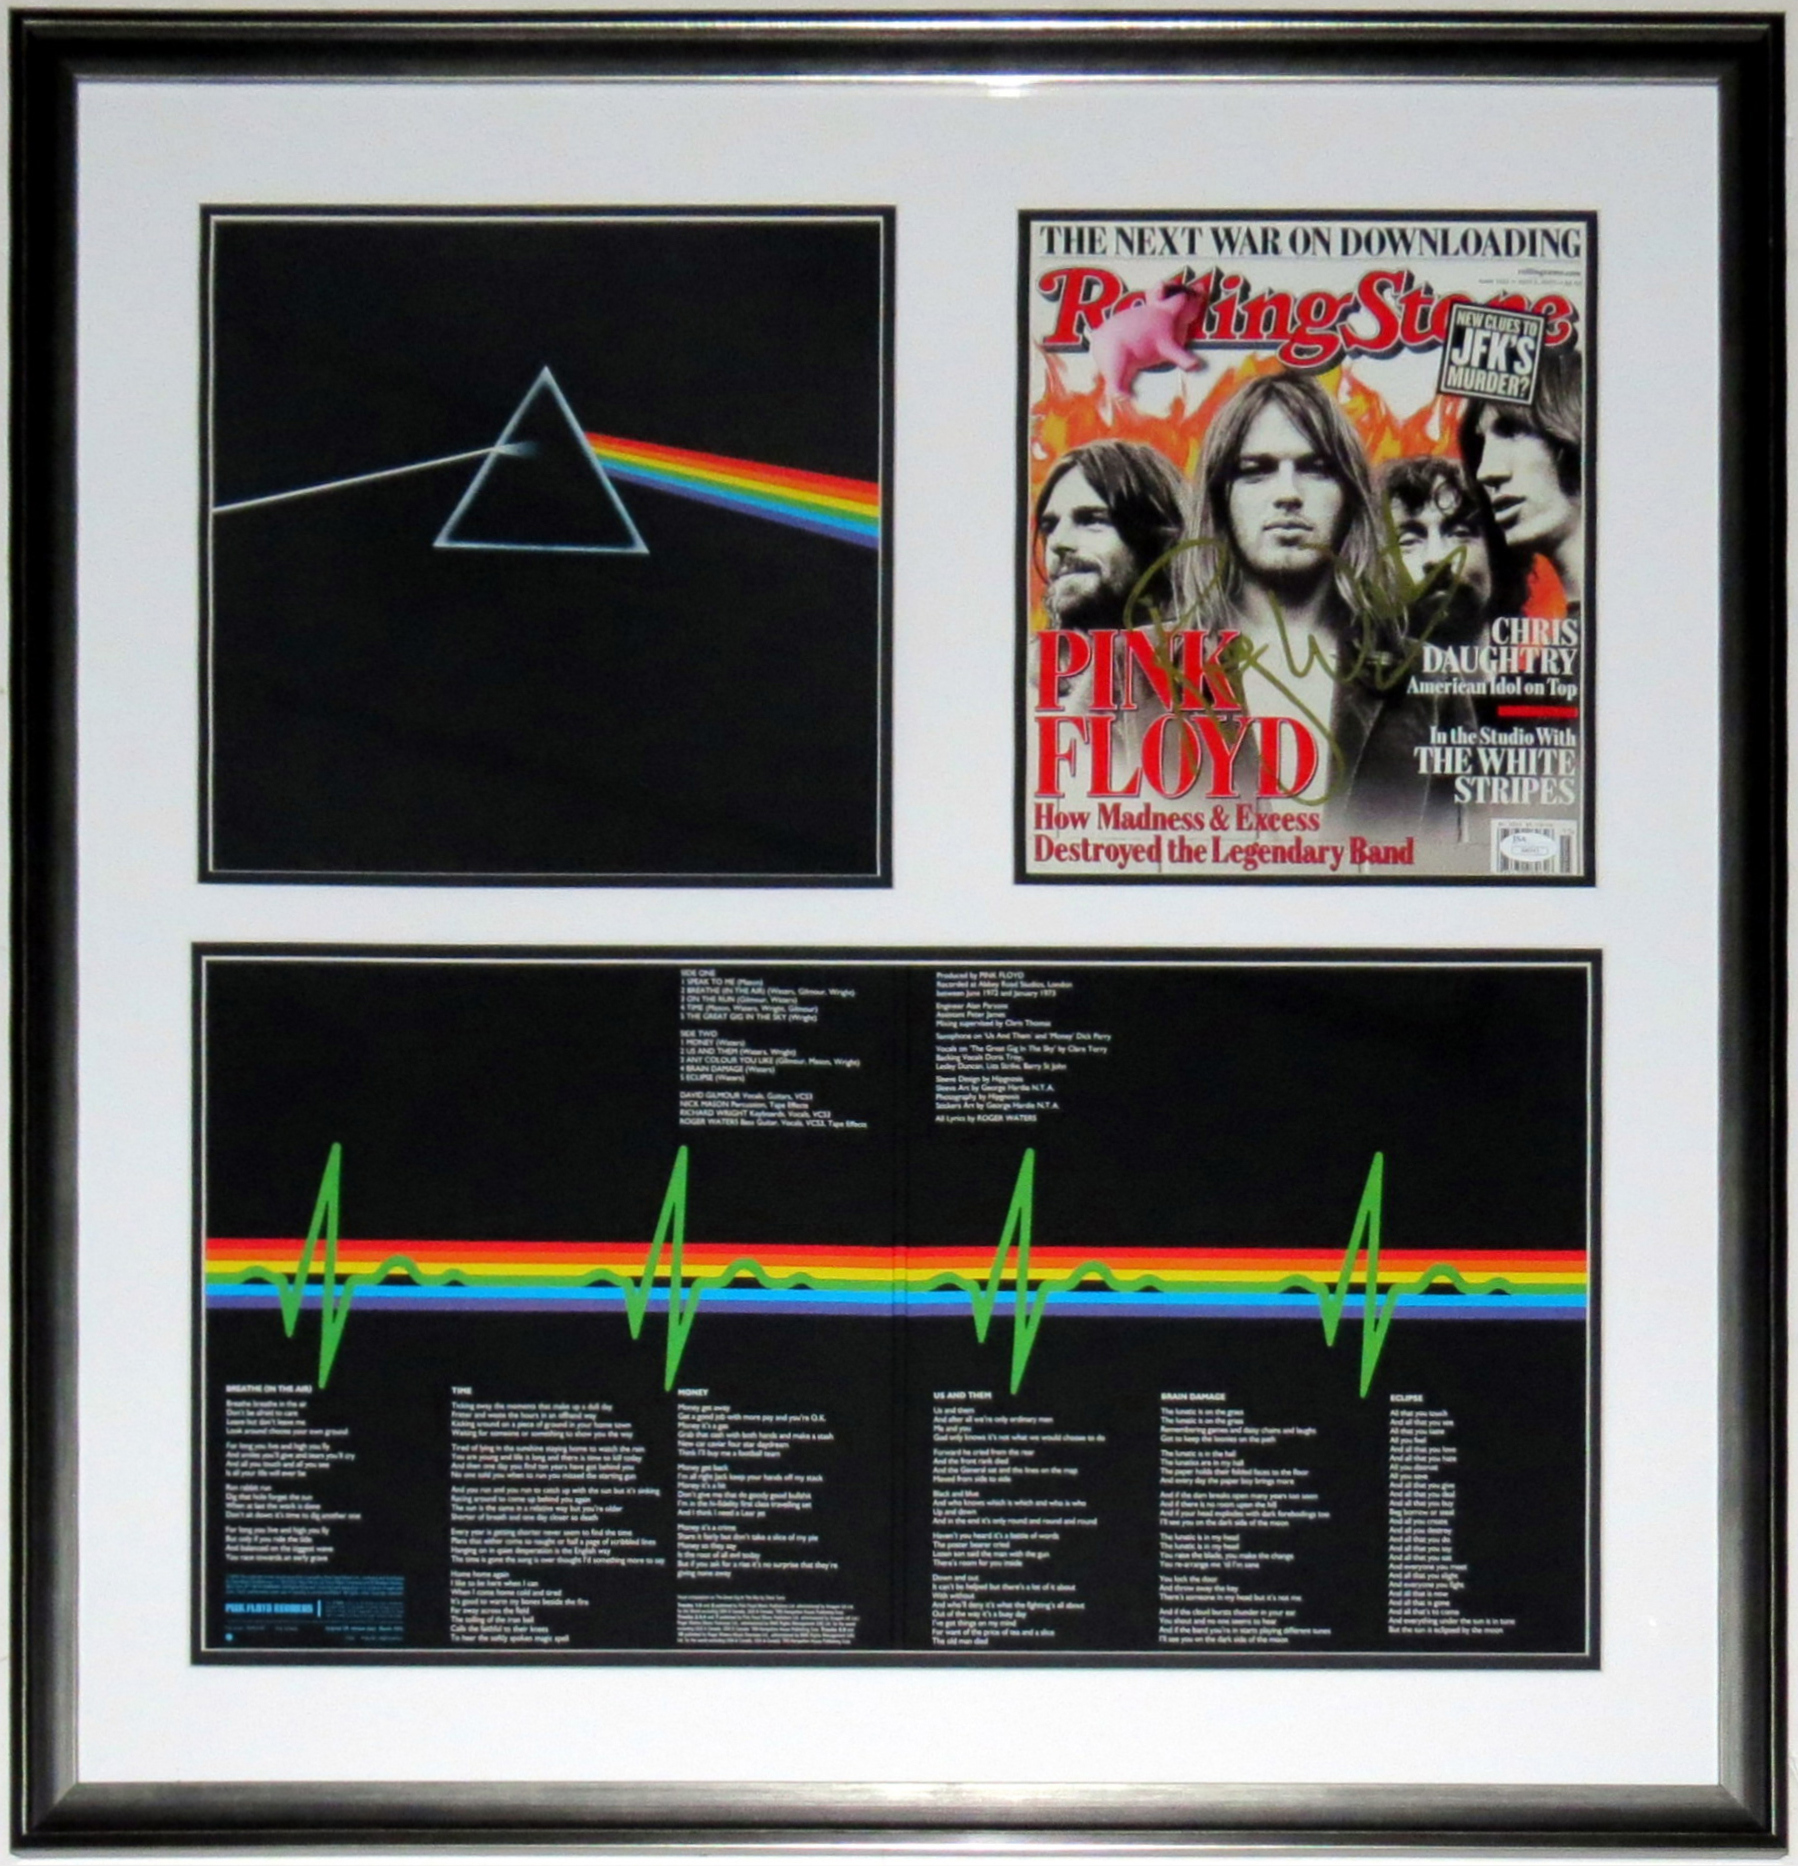 Roger Waters Signed Rolling Stone Magazine - JSA COA Authenticated - Professionally Framed & Pink Floyd Dark Side of the Moon Album - 32x32